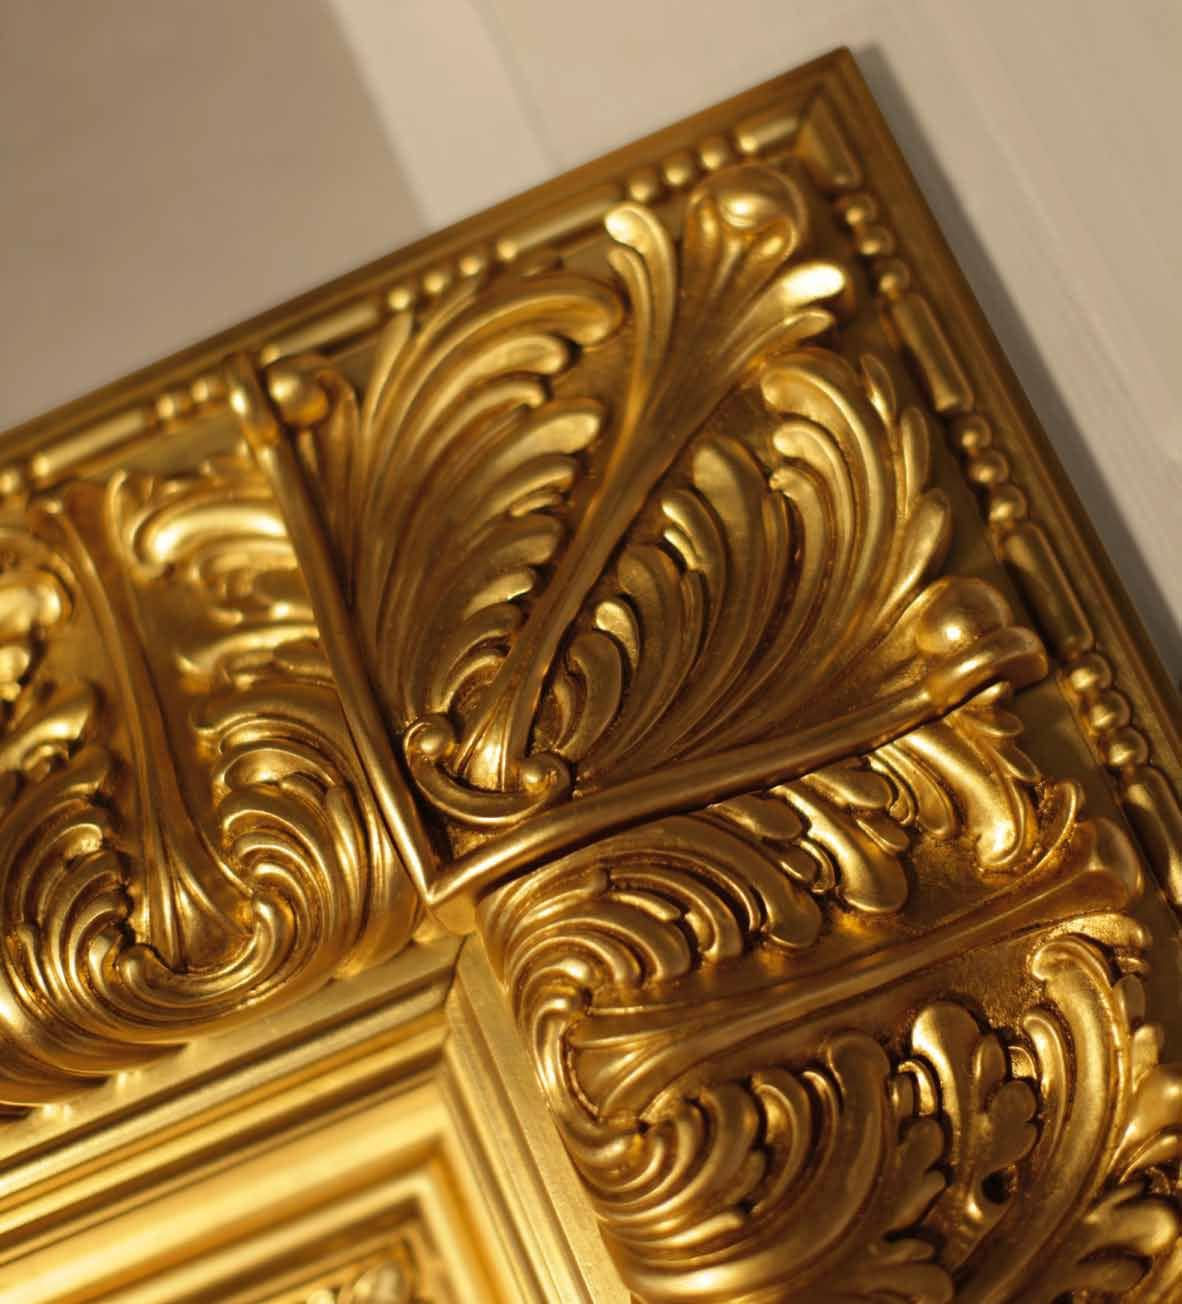 Corona Gold, Door entirely decorated in antique gold leaf